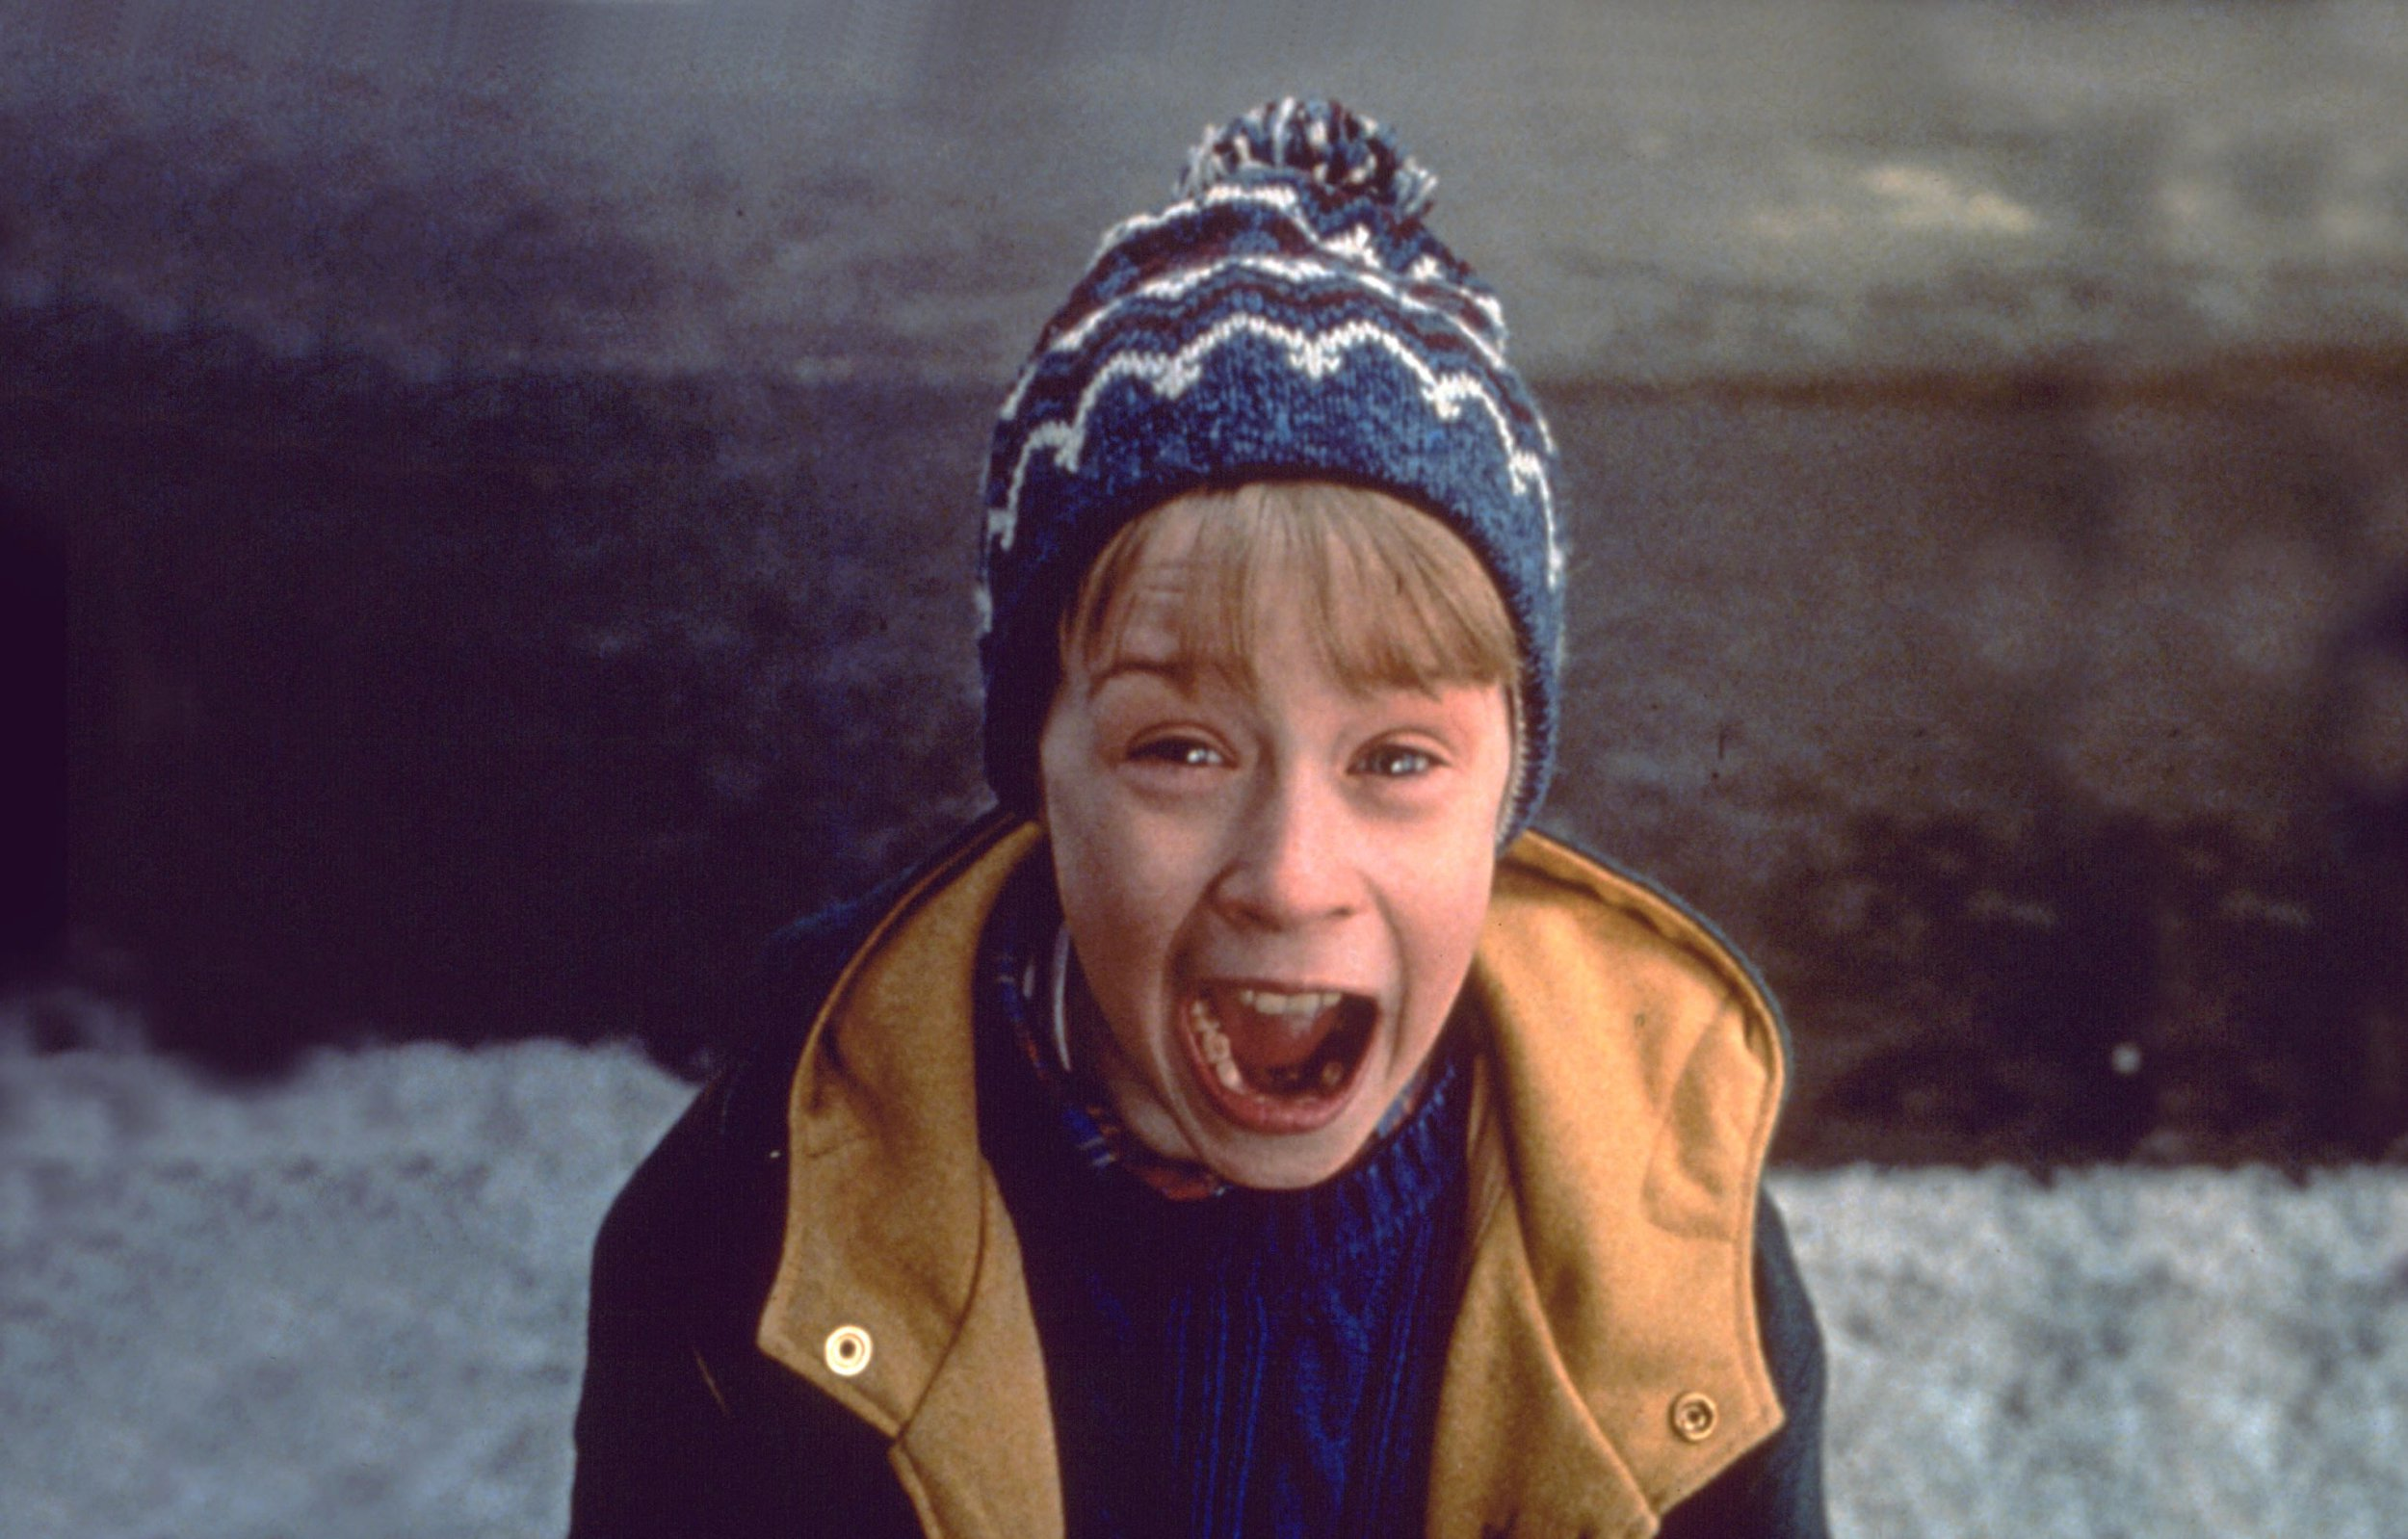 Editorial use only. No book cover usage. Mandatory Credit: Photo by 20th Century Fox/Kobal/REX/Shutterstock (5883418l) Macaulay Culkin Home Alone 2 - Lost In New York - 1992 Director: Chris Columbus 20th Century Fox USA Scene Still Comedy Maman, j'ai encore rat? l'avion